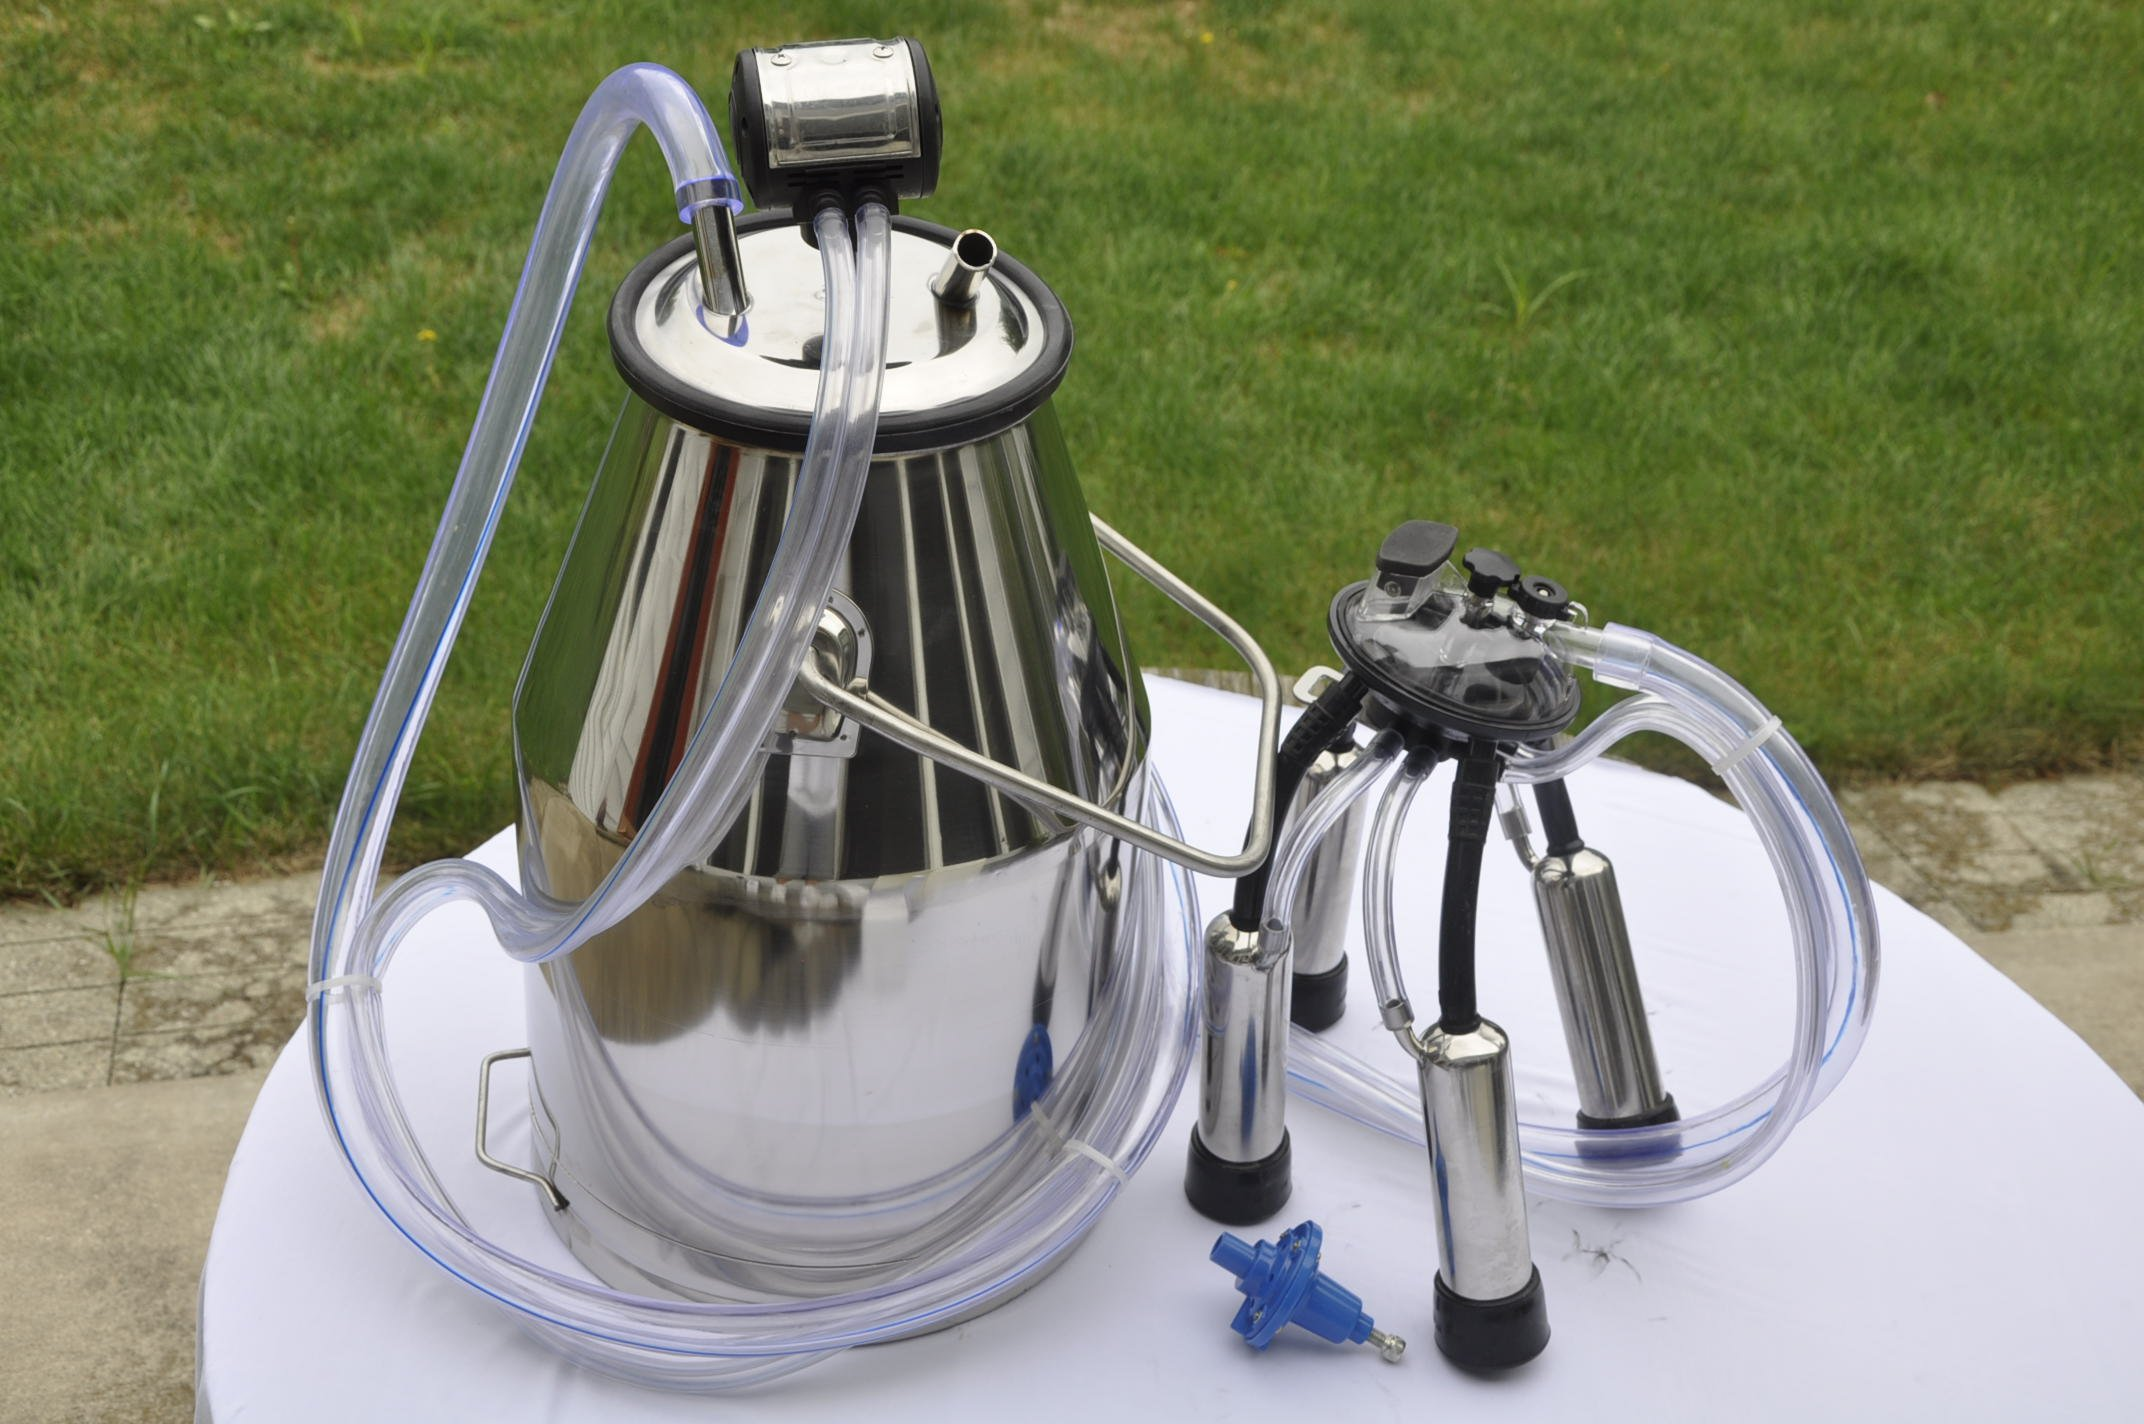 Milker Machine for Small Farm Single Cow Milking Station Portable 25 liter SS Bucket Pulsator Claw milk Shell with Liners and the hardware Clear PVC Flex Hose